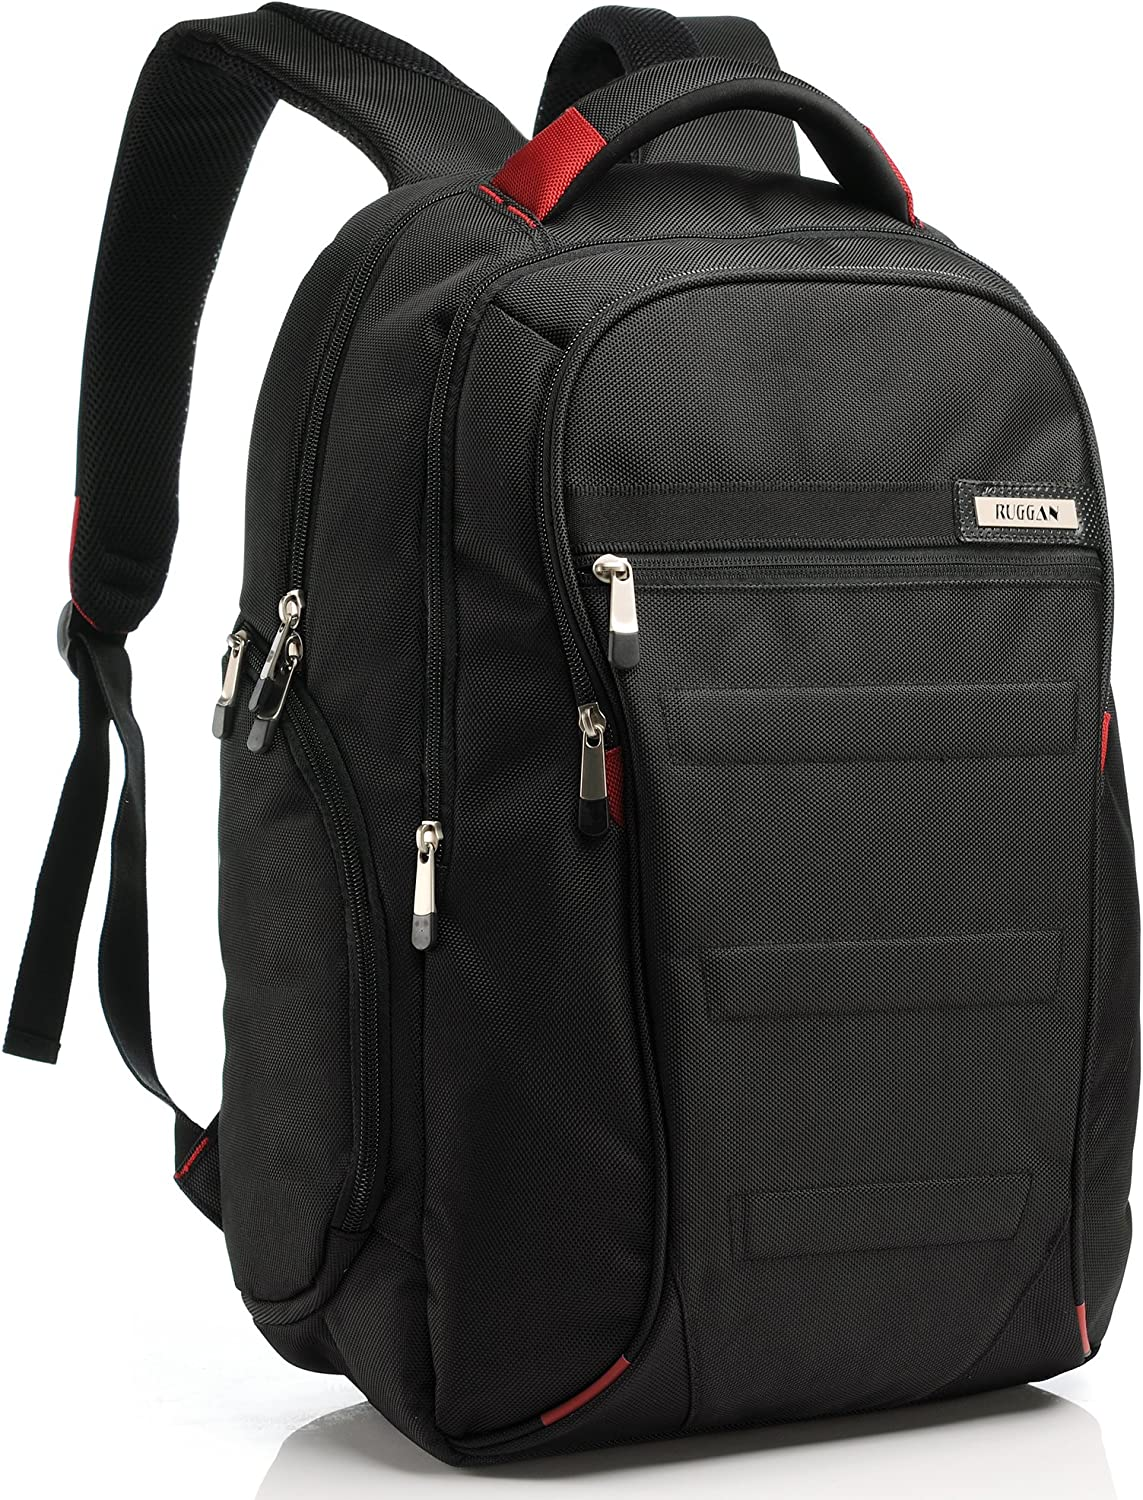 Laptop Backpack for Women Men College 17 inch for Travel Business Commute Large